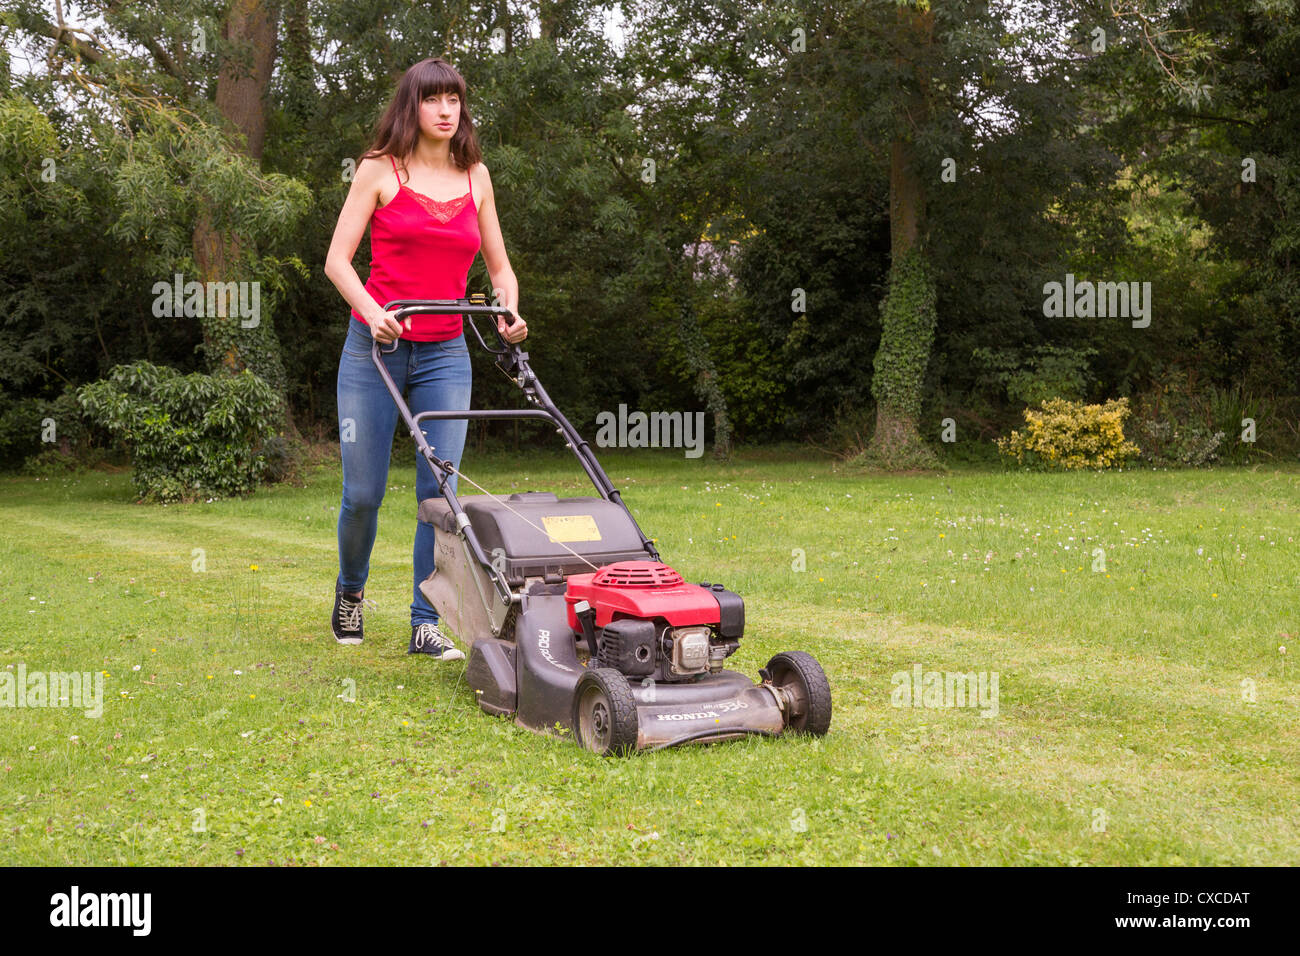 woman mowing lawn - Stock Image